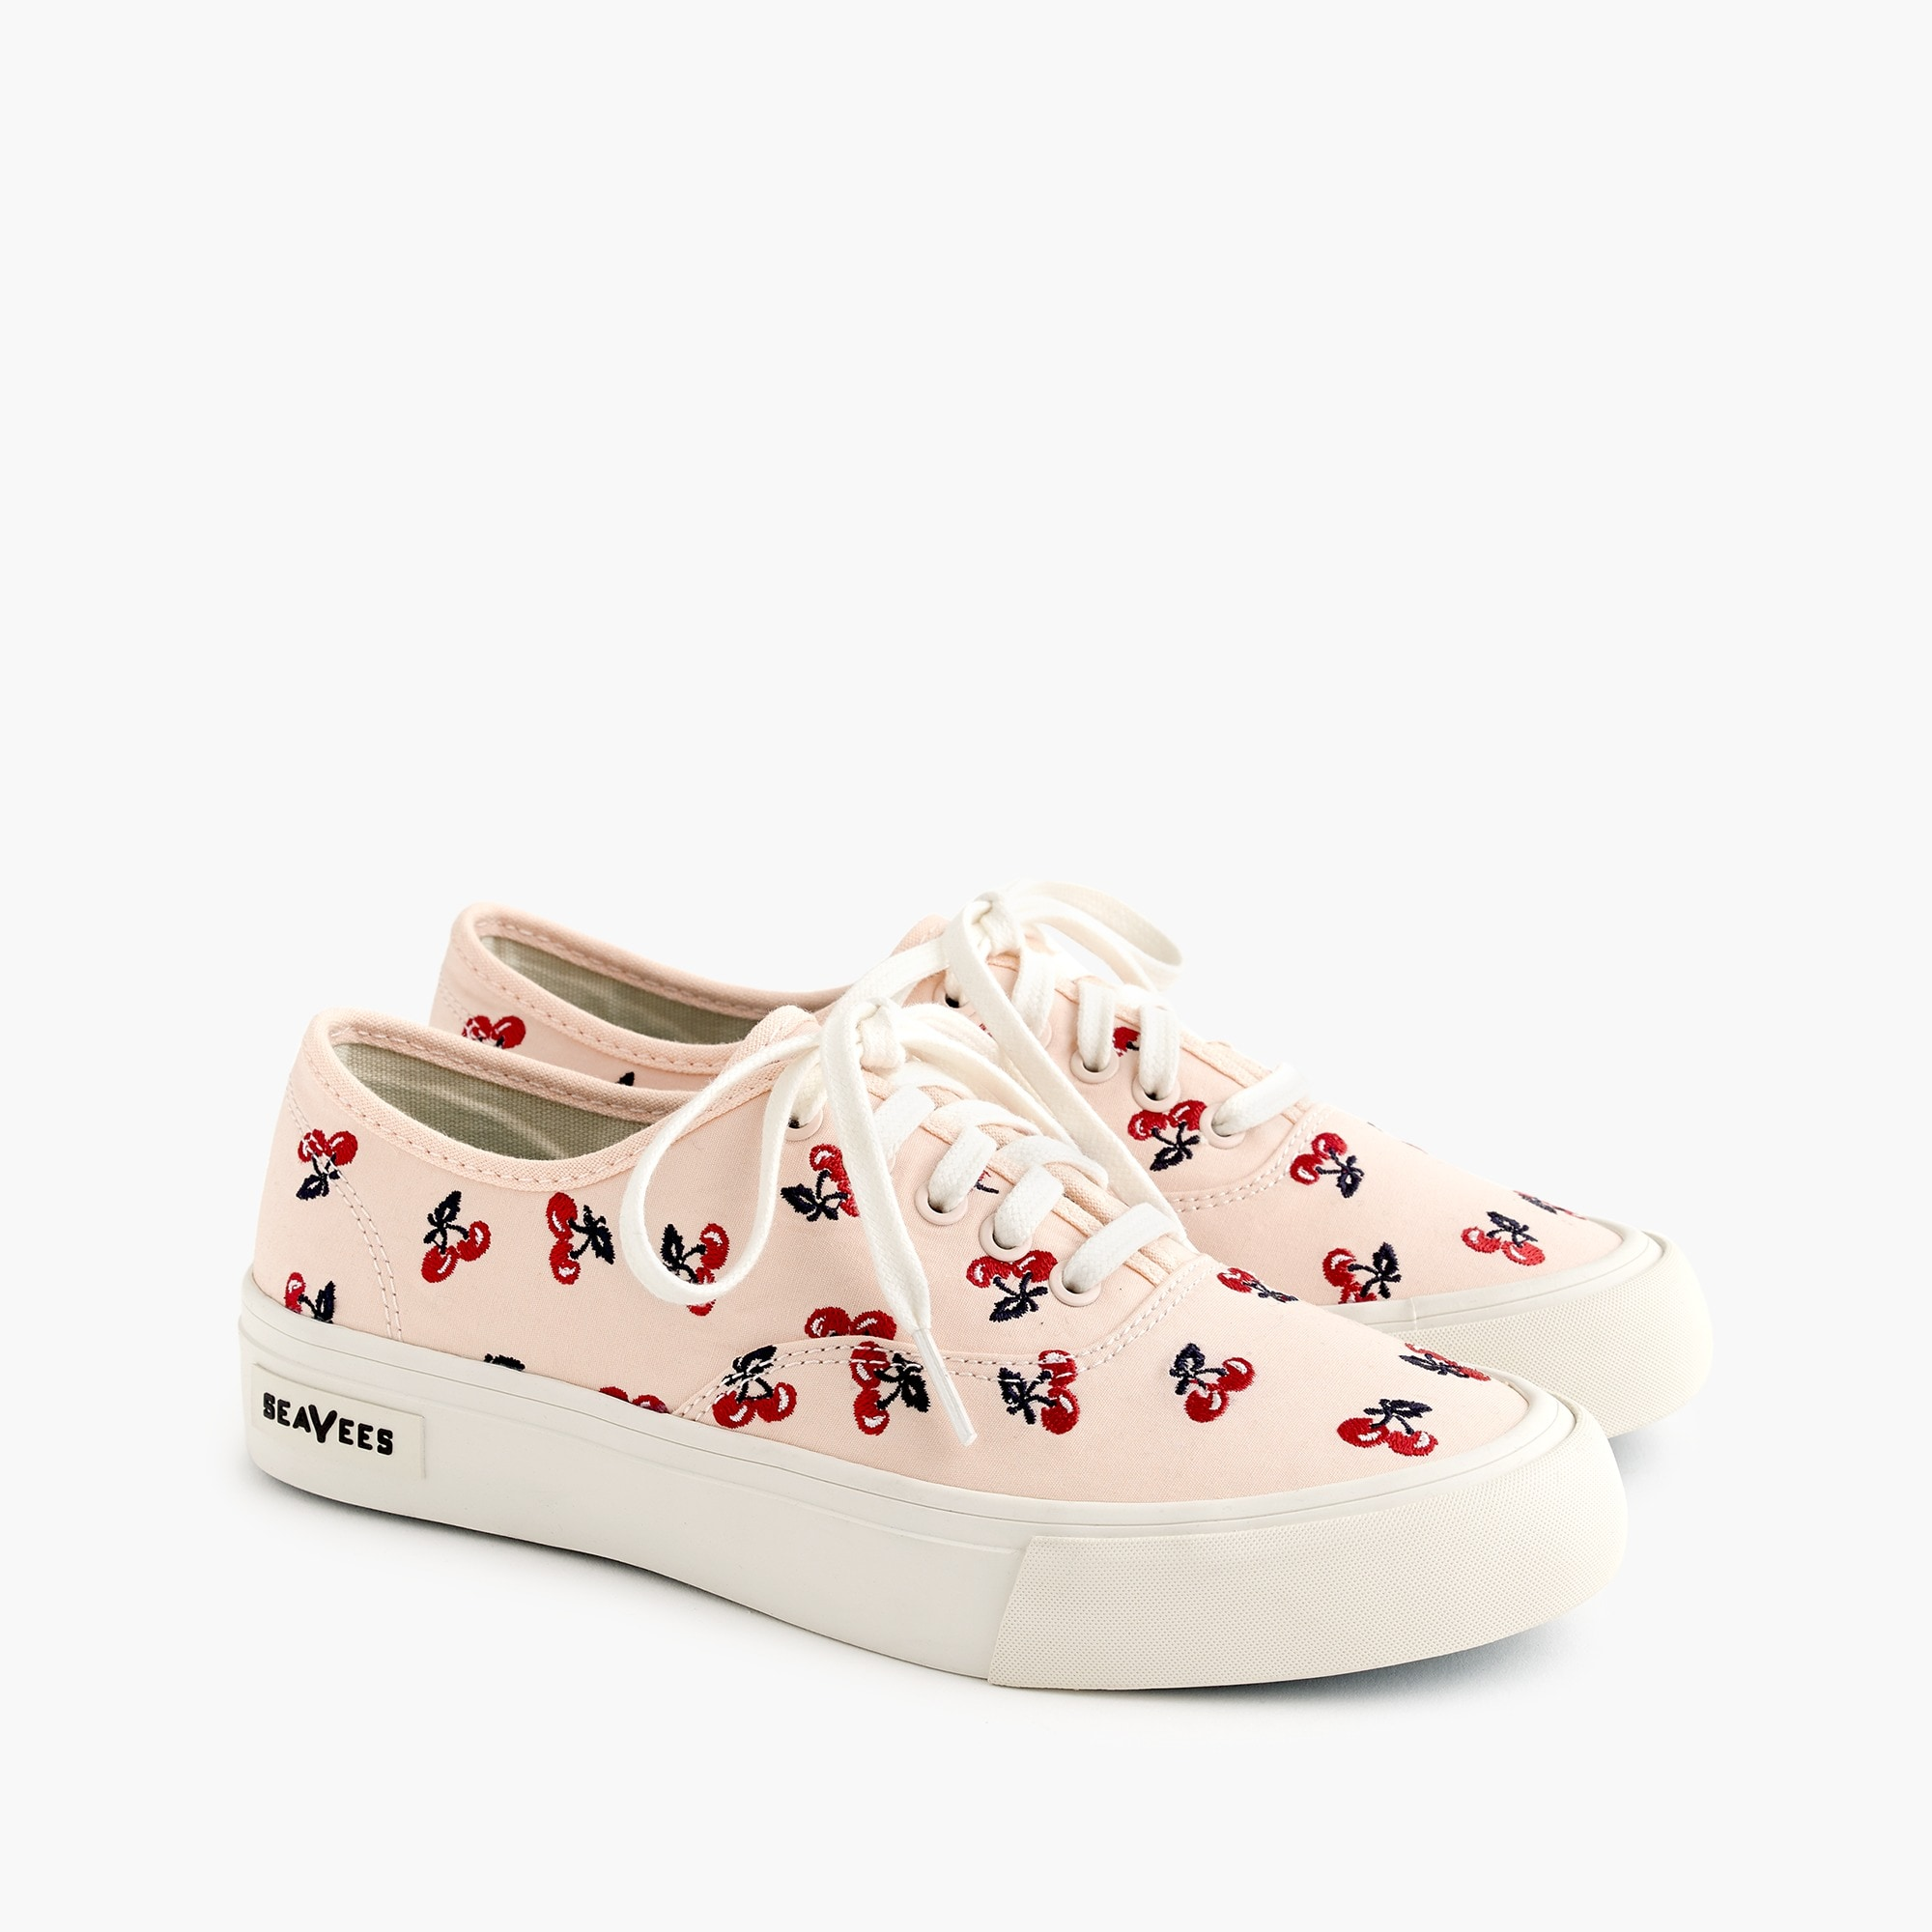 womens SeaVees® for J.Crew Legend sneakers with embroidered fruit